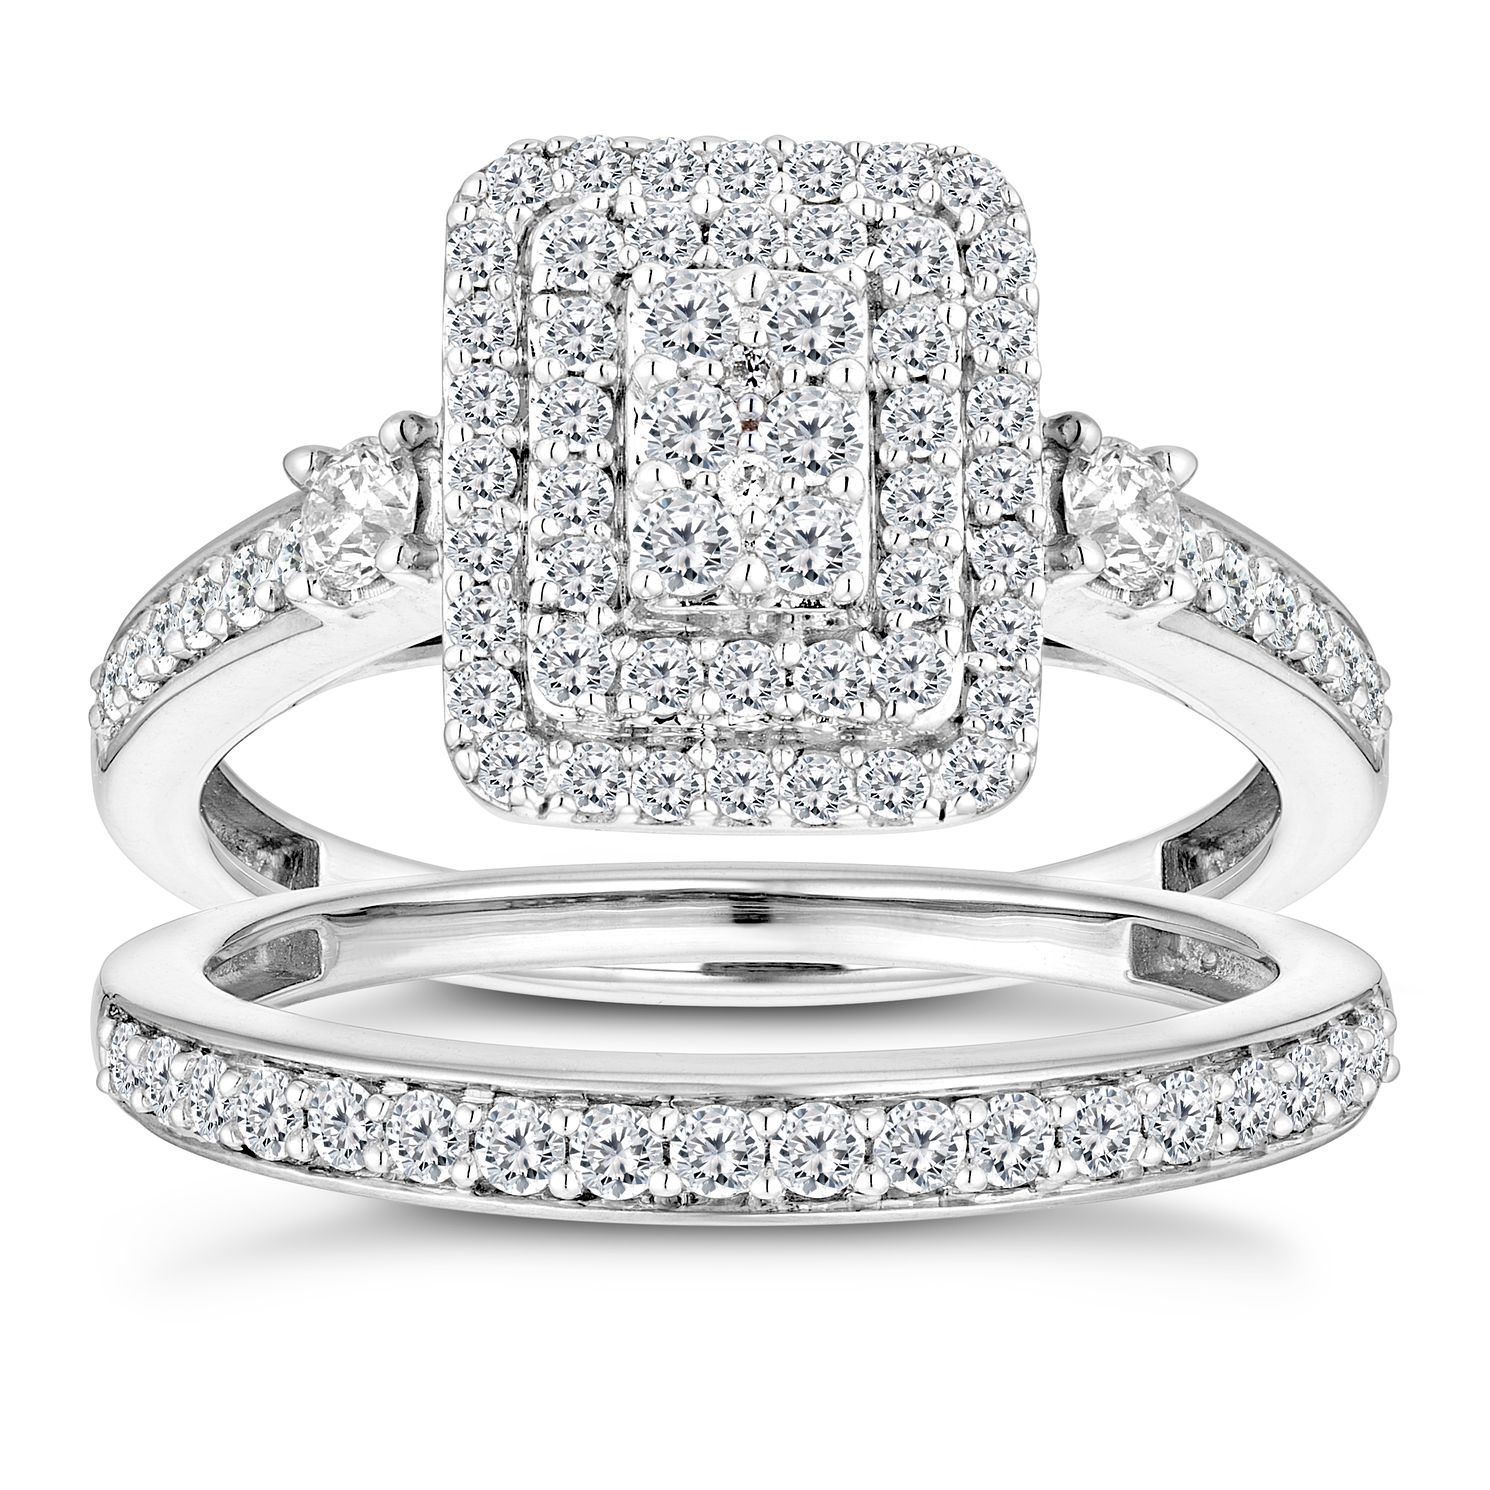 Perfect Fit 9ct White Gold Rectangle Diamond Bridal Set - Product number 2967480